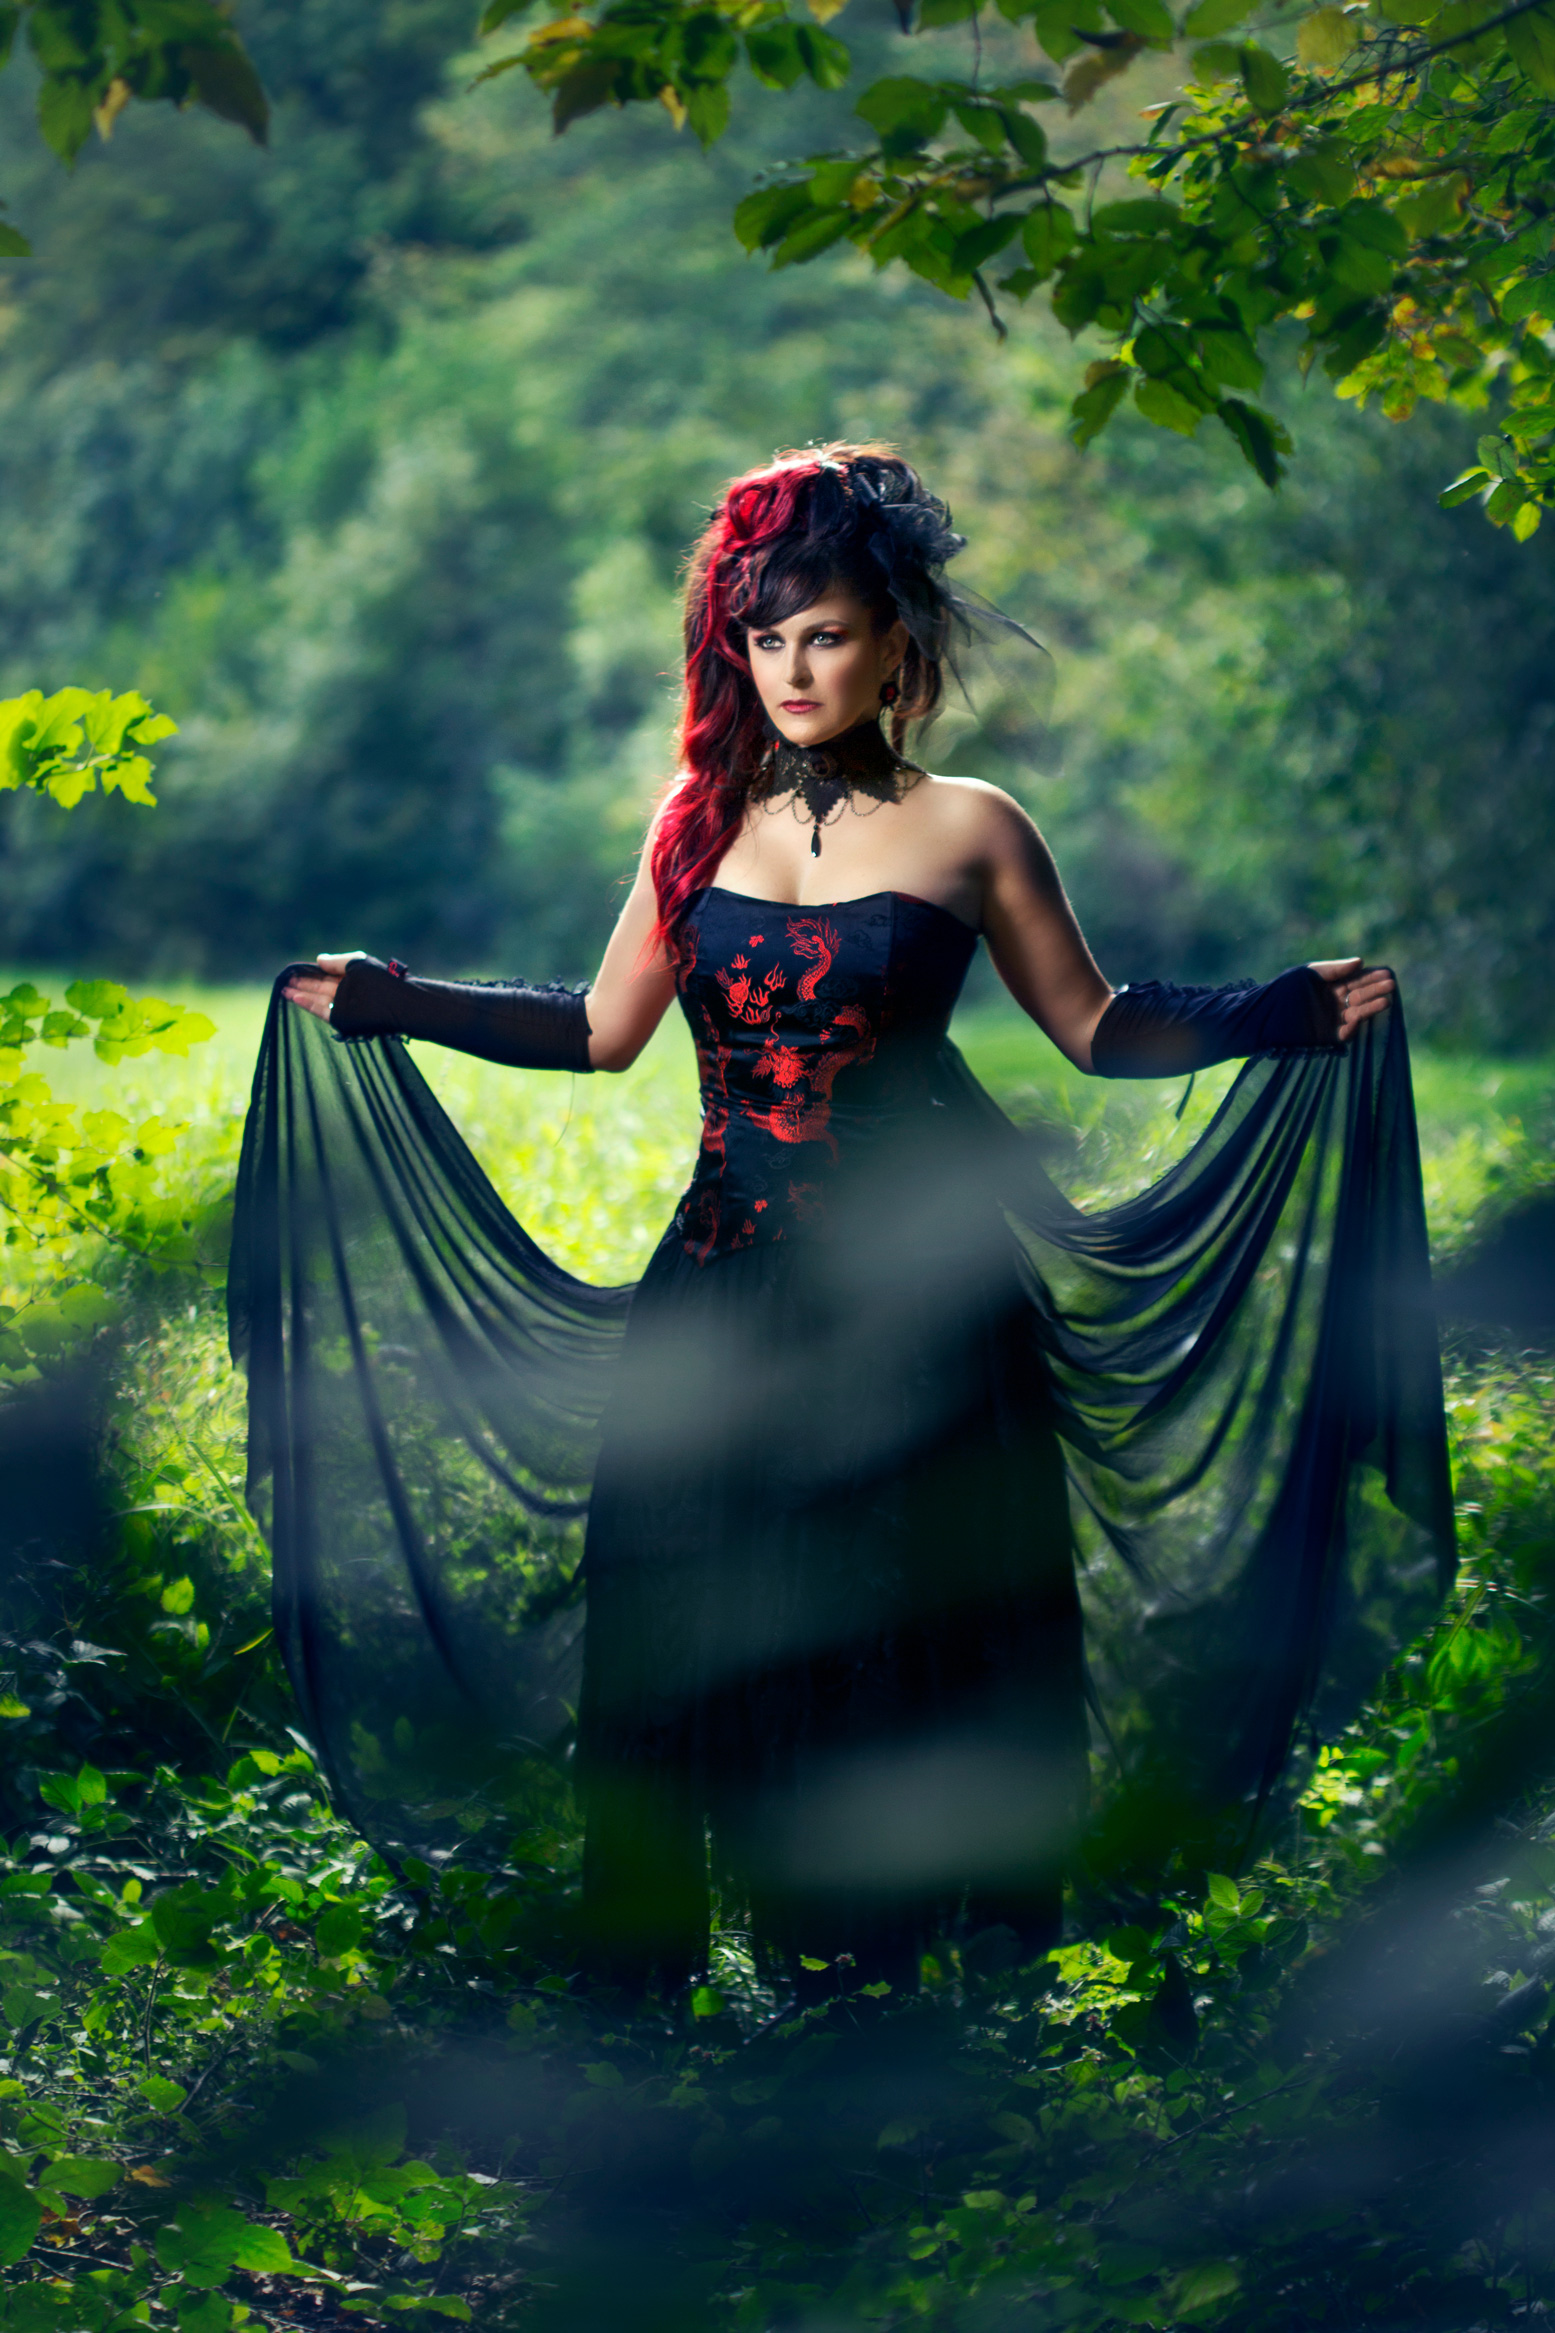 Why Do Women Love Gothic Clothing